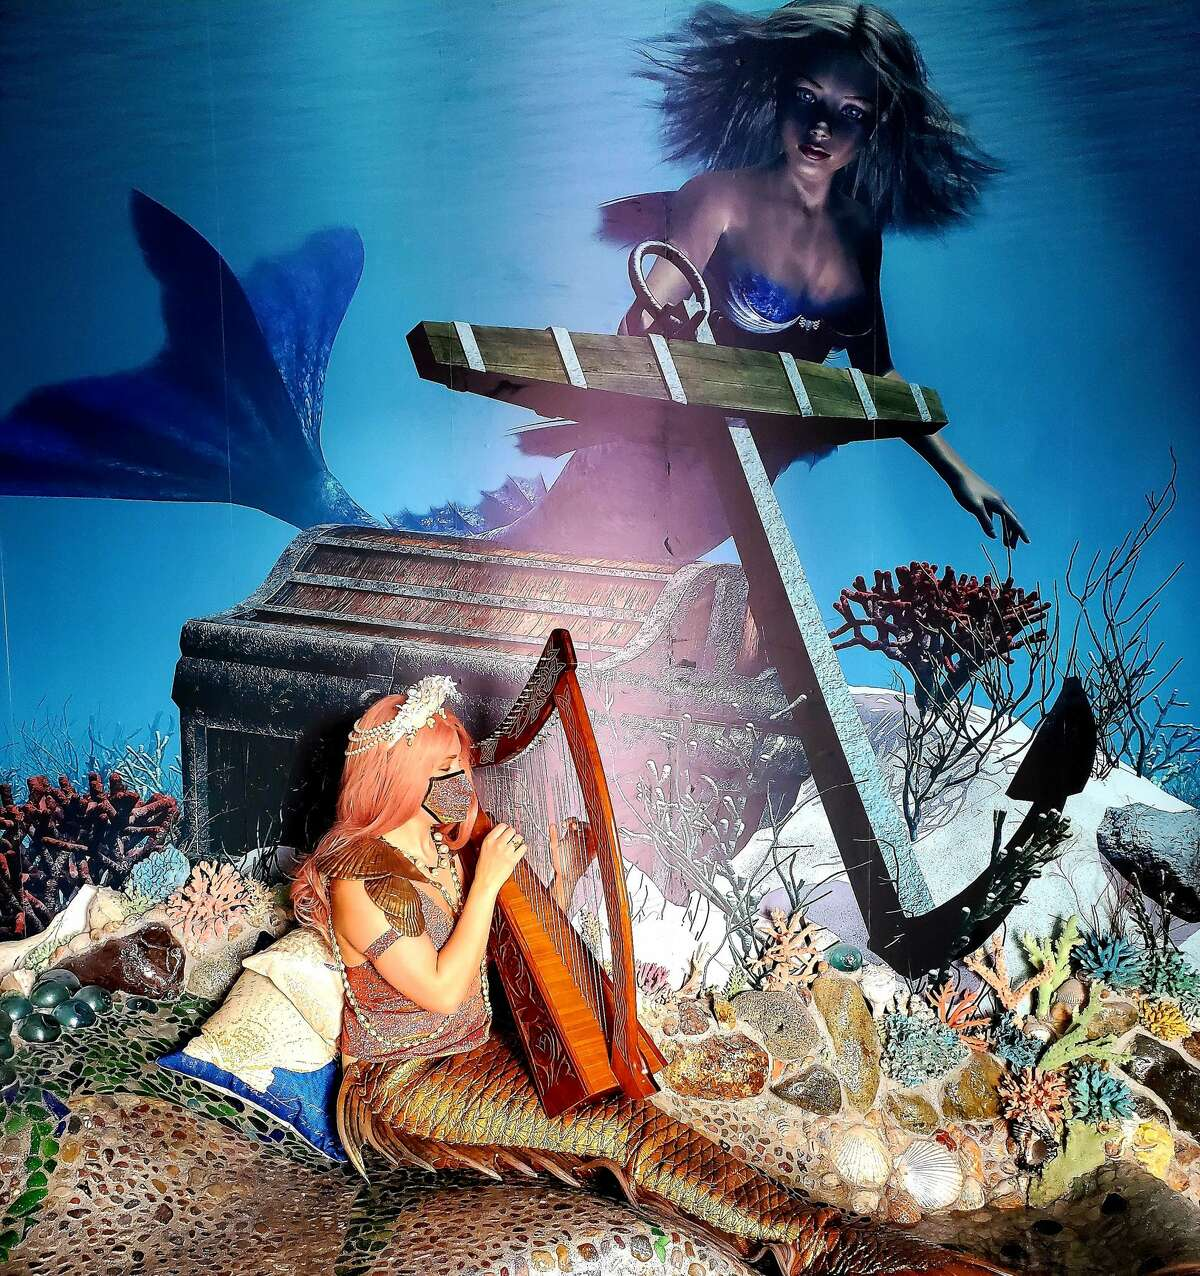 Washington's newest attraction is dedicated to mermaids, ocean ecology